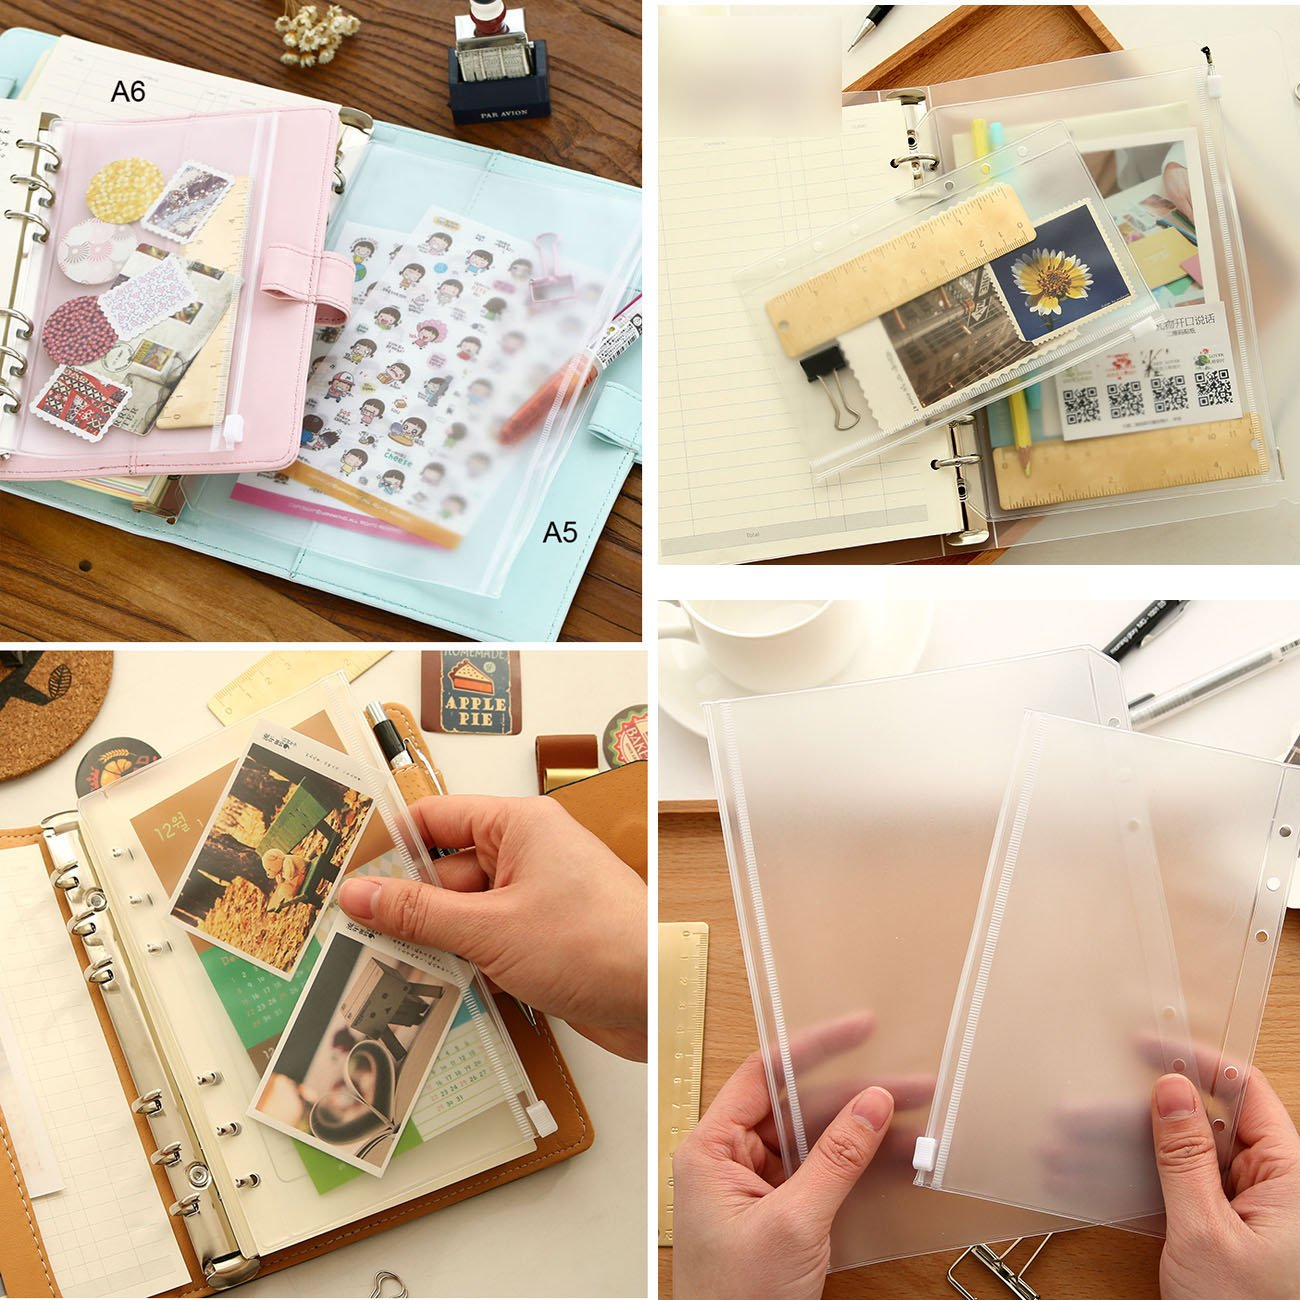 TM 1 for A5 binder, 1 for A6, 1 for A7 DadaCrafts 3-Packs Clear Plastic Zipper Pockets for 6-Ring Notebook Binder